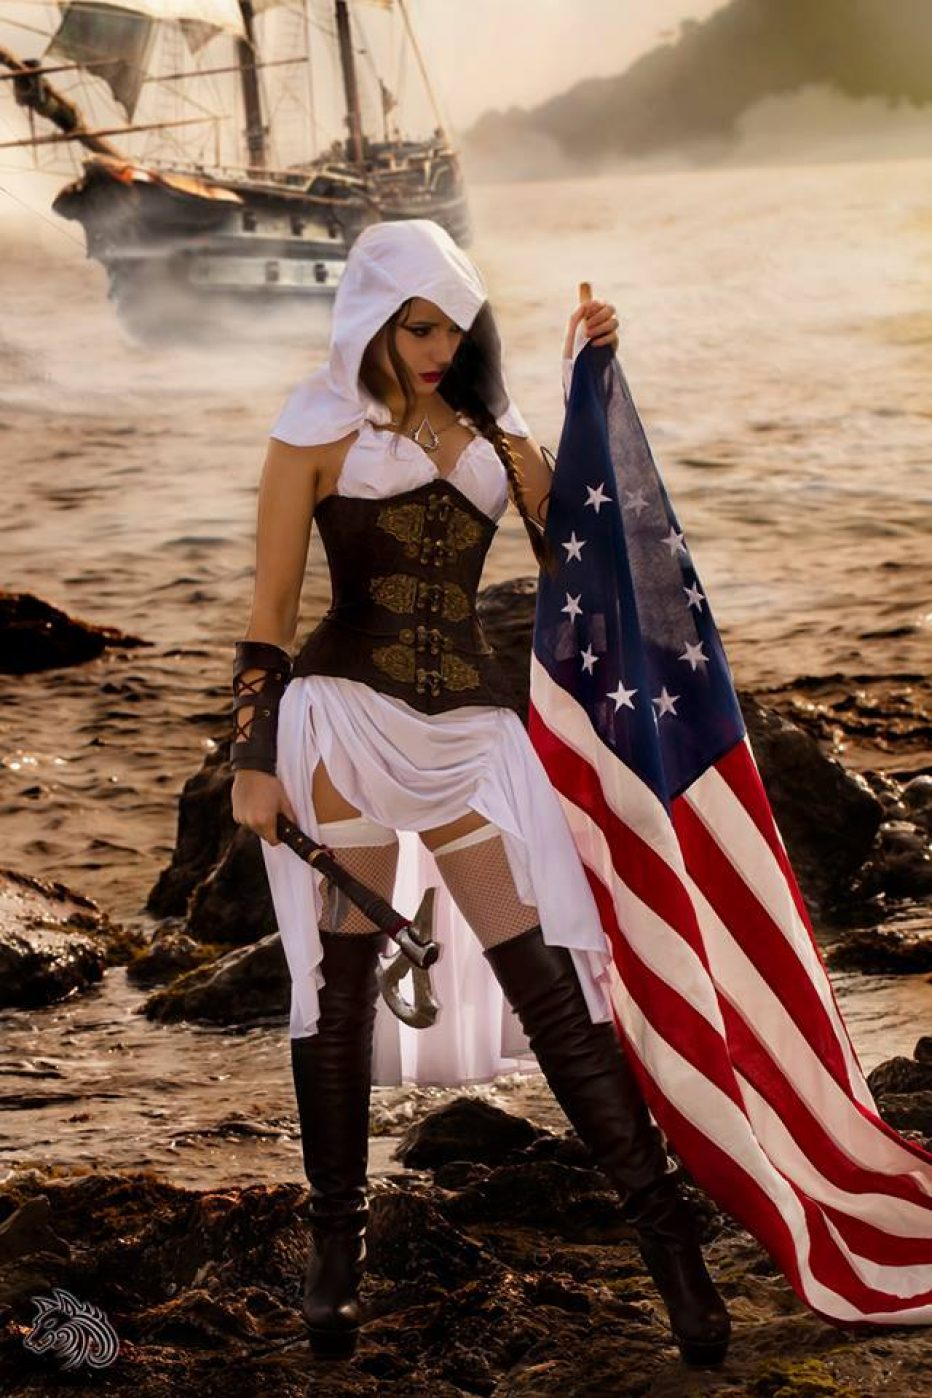 Assassins-Creed-Female-Cosplay-Gamers-Heroes-4.jpg